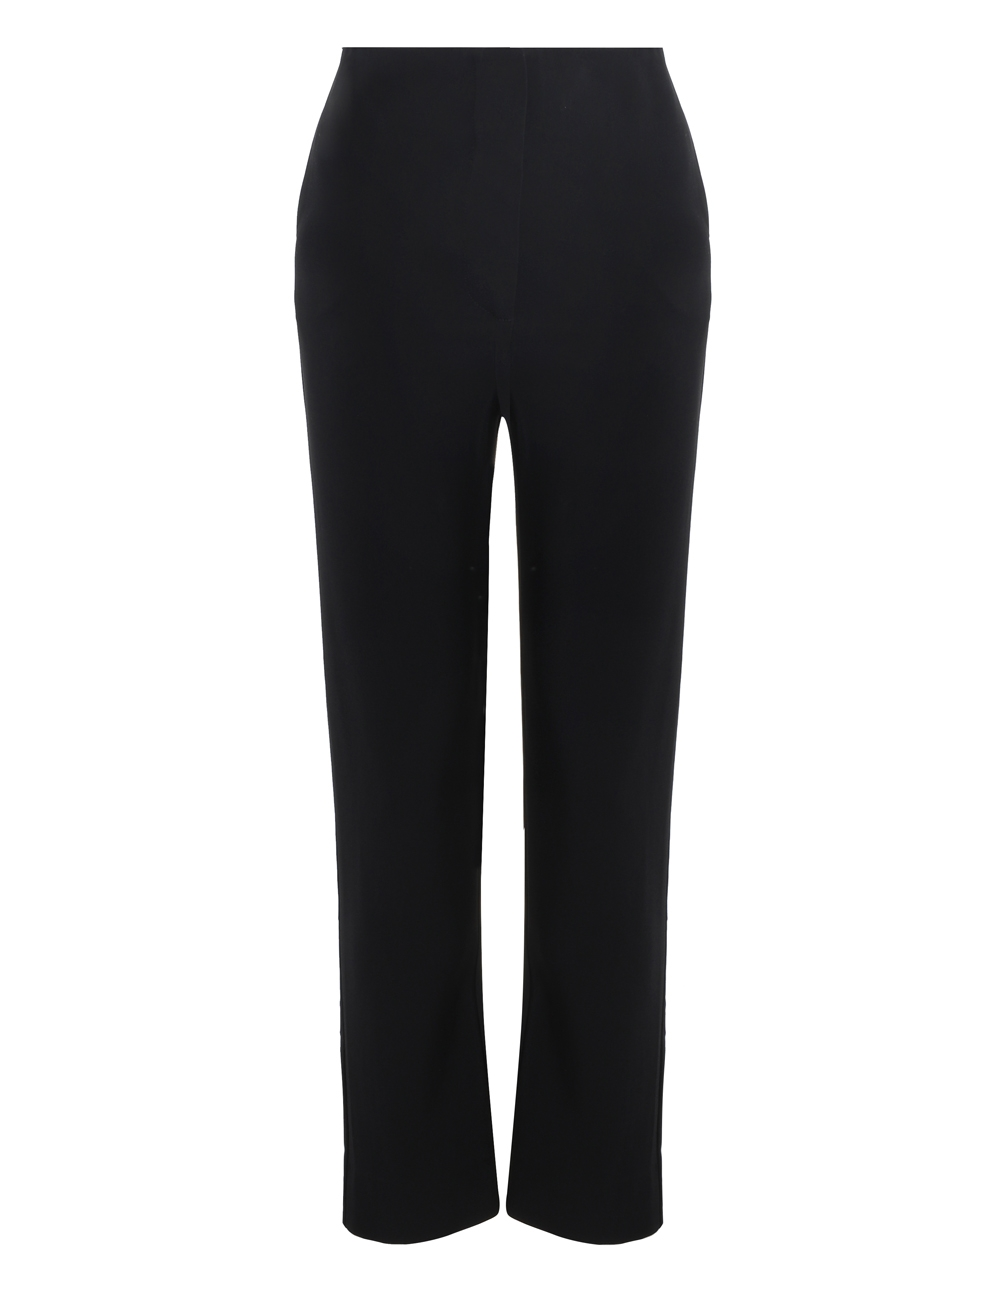 Stovepipe Pant